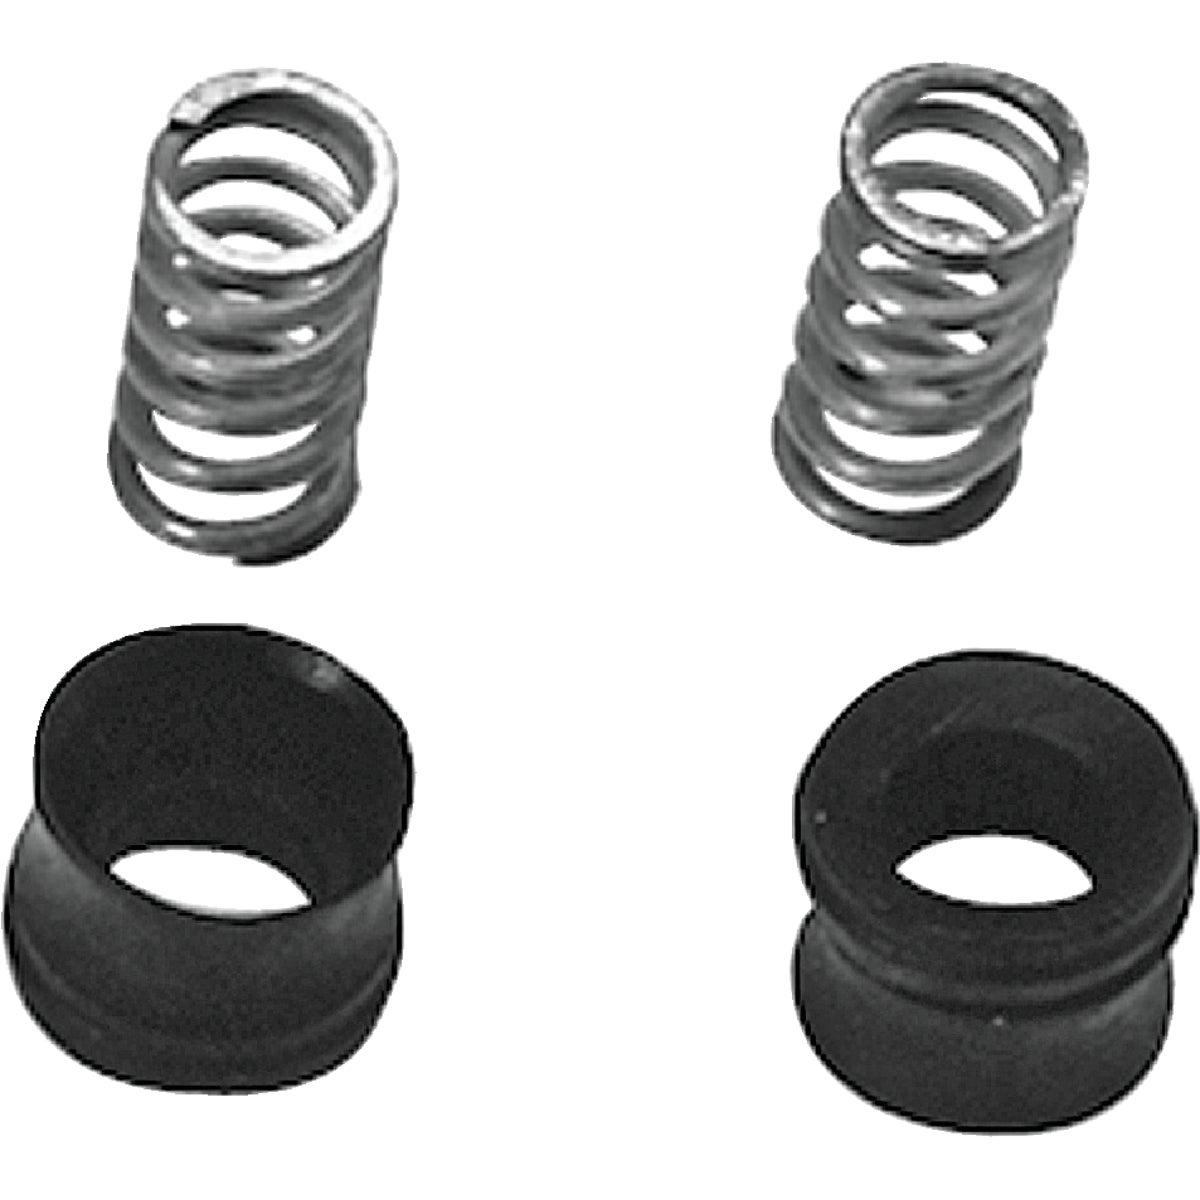 SPRINGS & SEAT KIT - 80703 by Danco Perfect Match